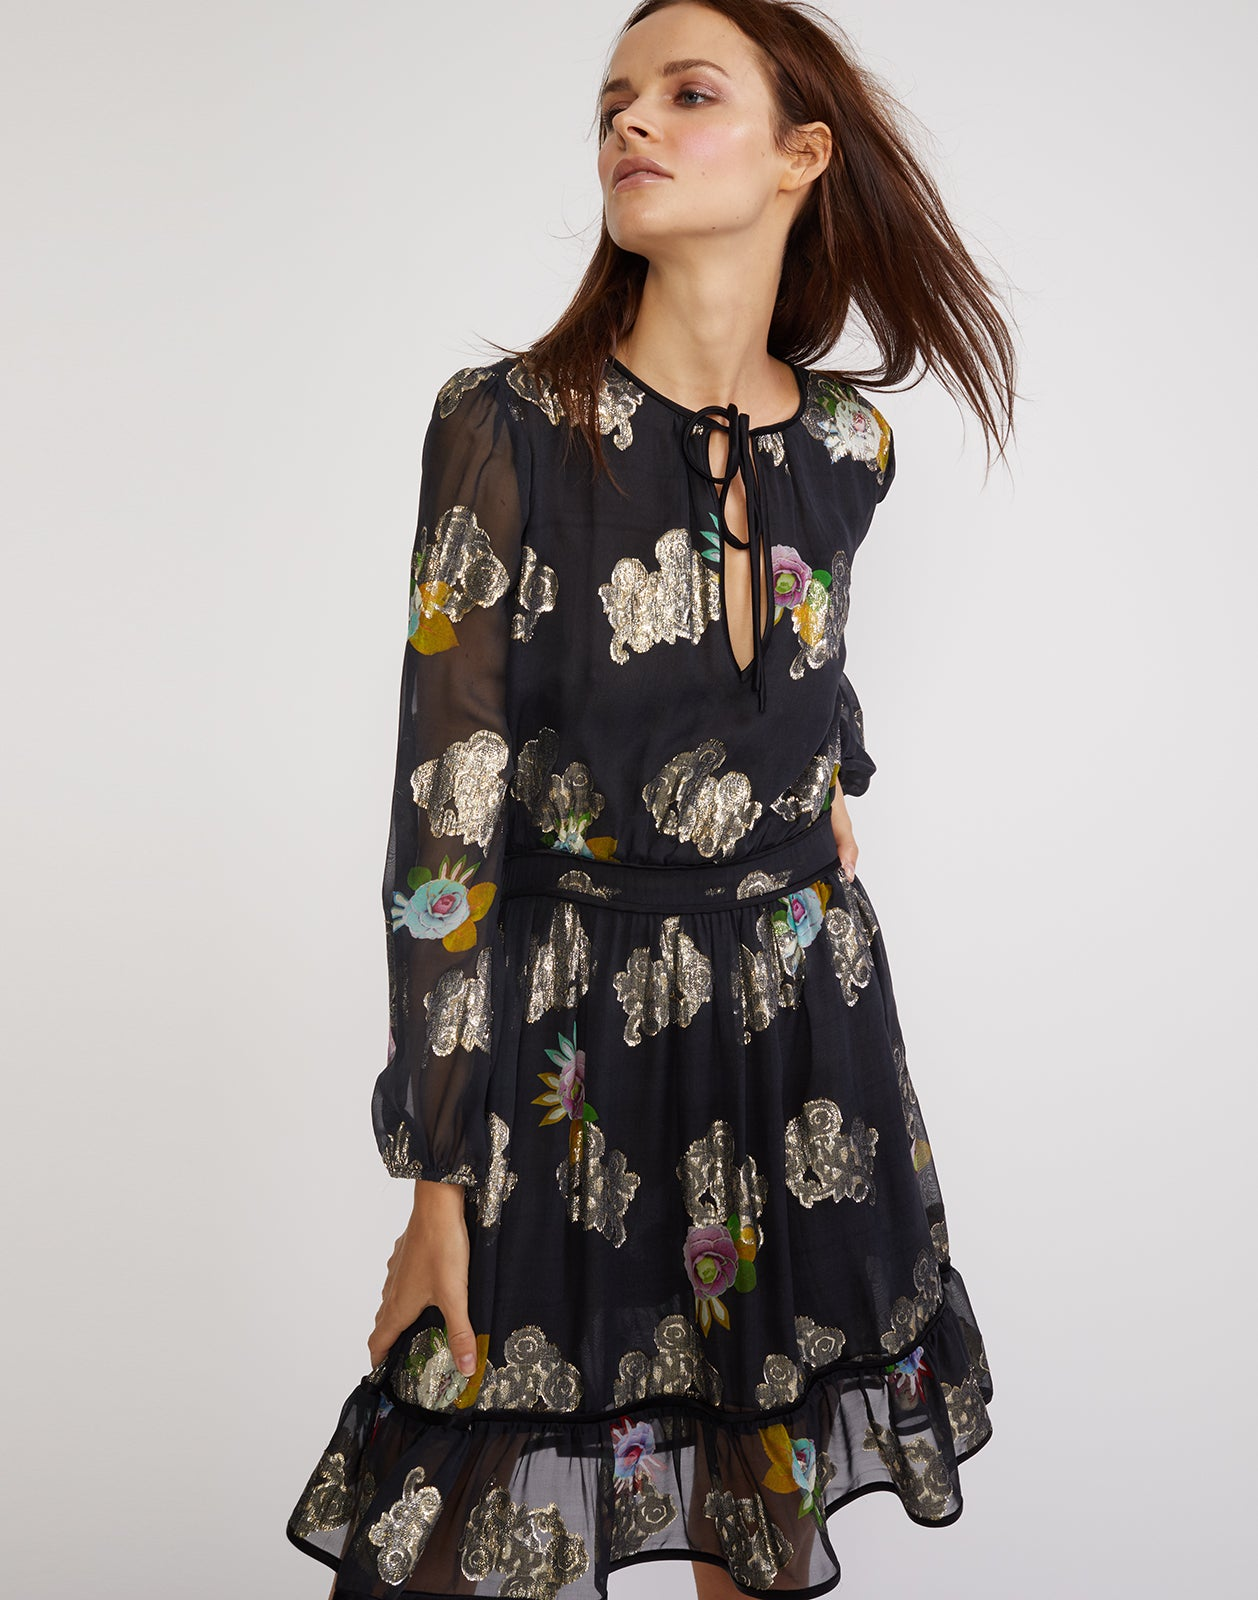 3/4 angled view of the sheer metallic floral print dress with ruffle flounce bottom